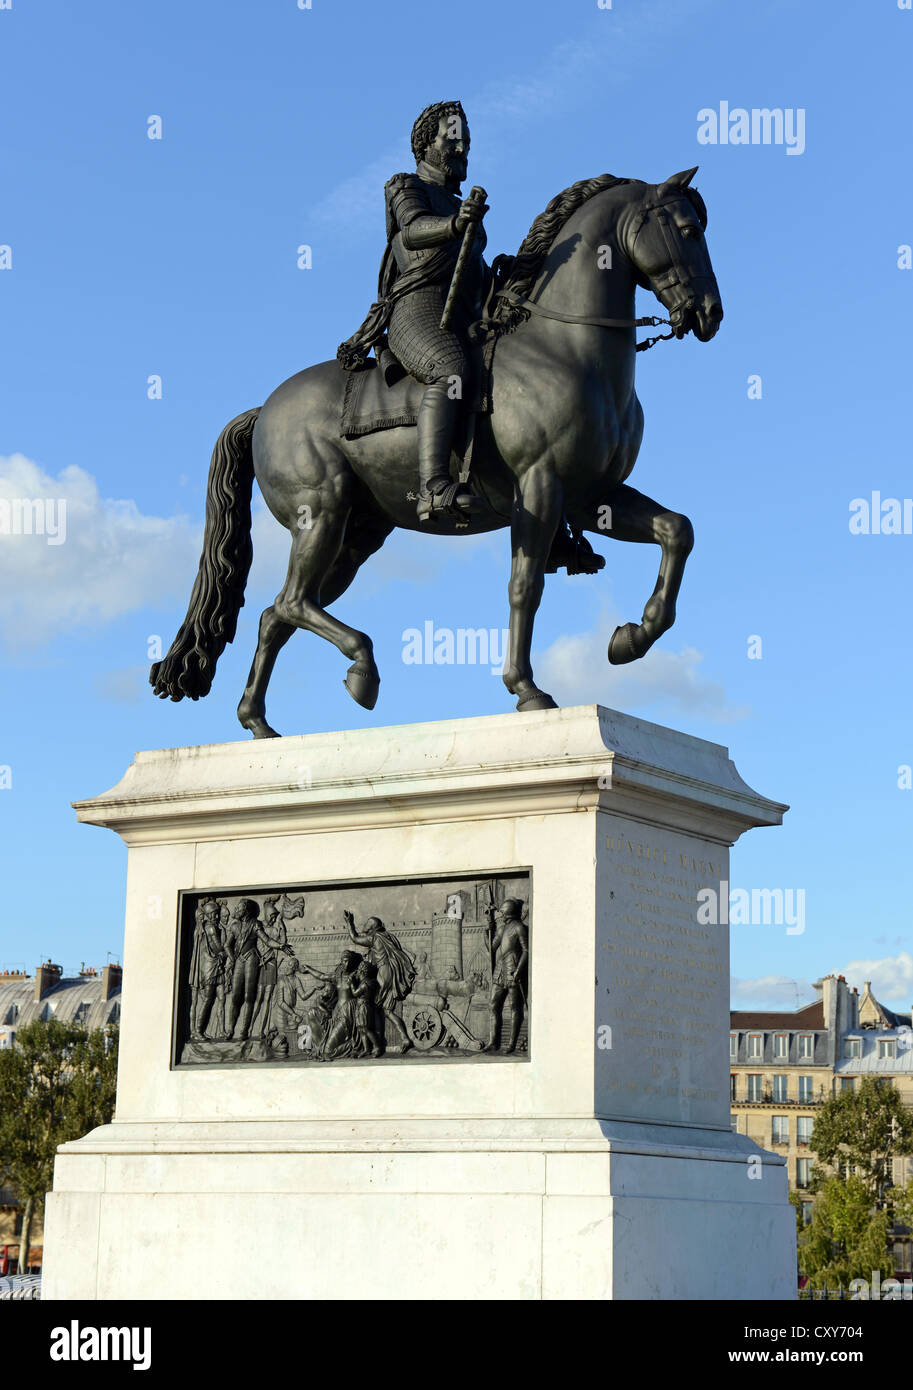 Statue of King of France Henri IV near Pont Neuf at Paris, France - Stock Image